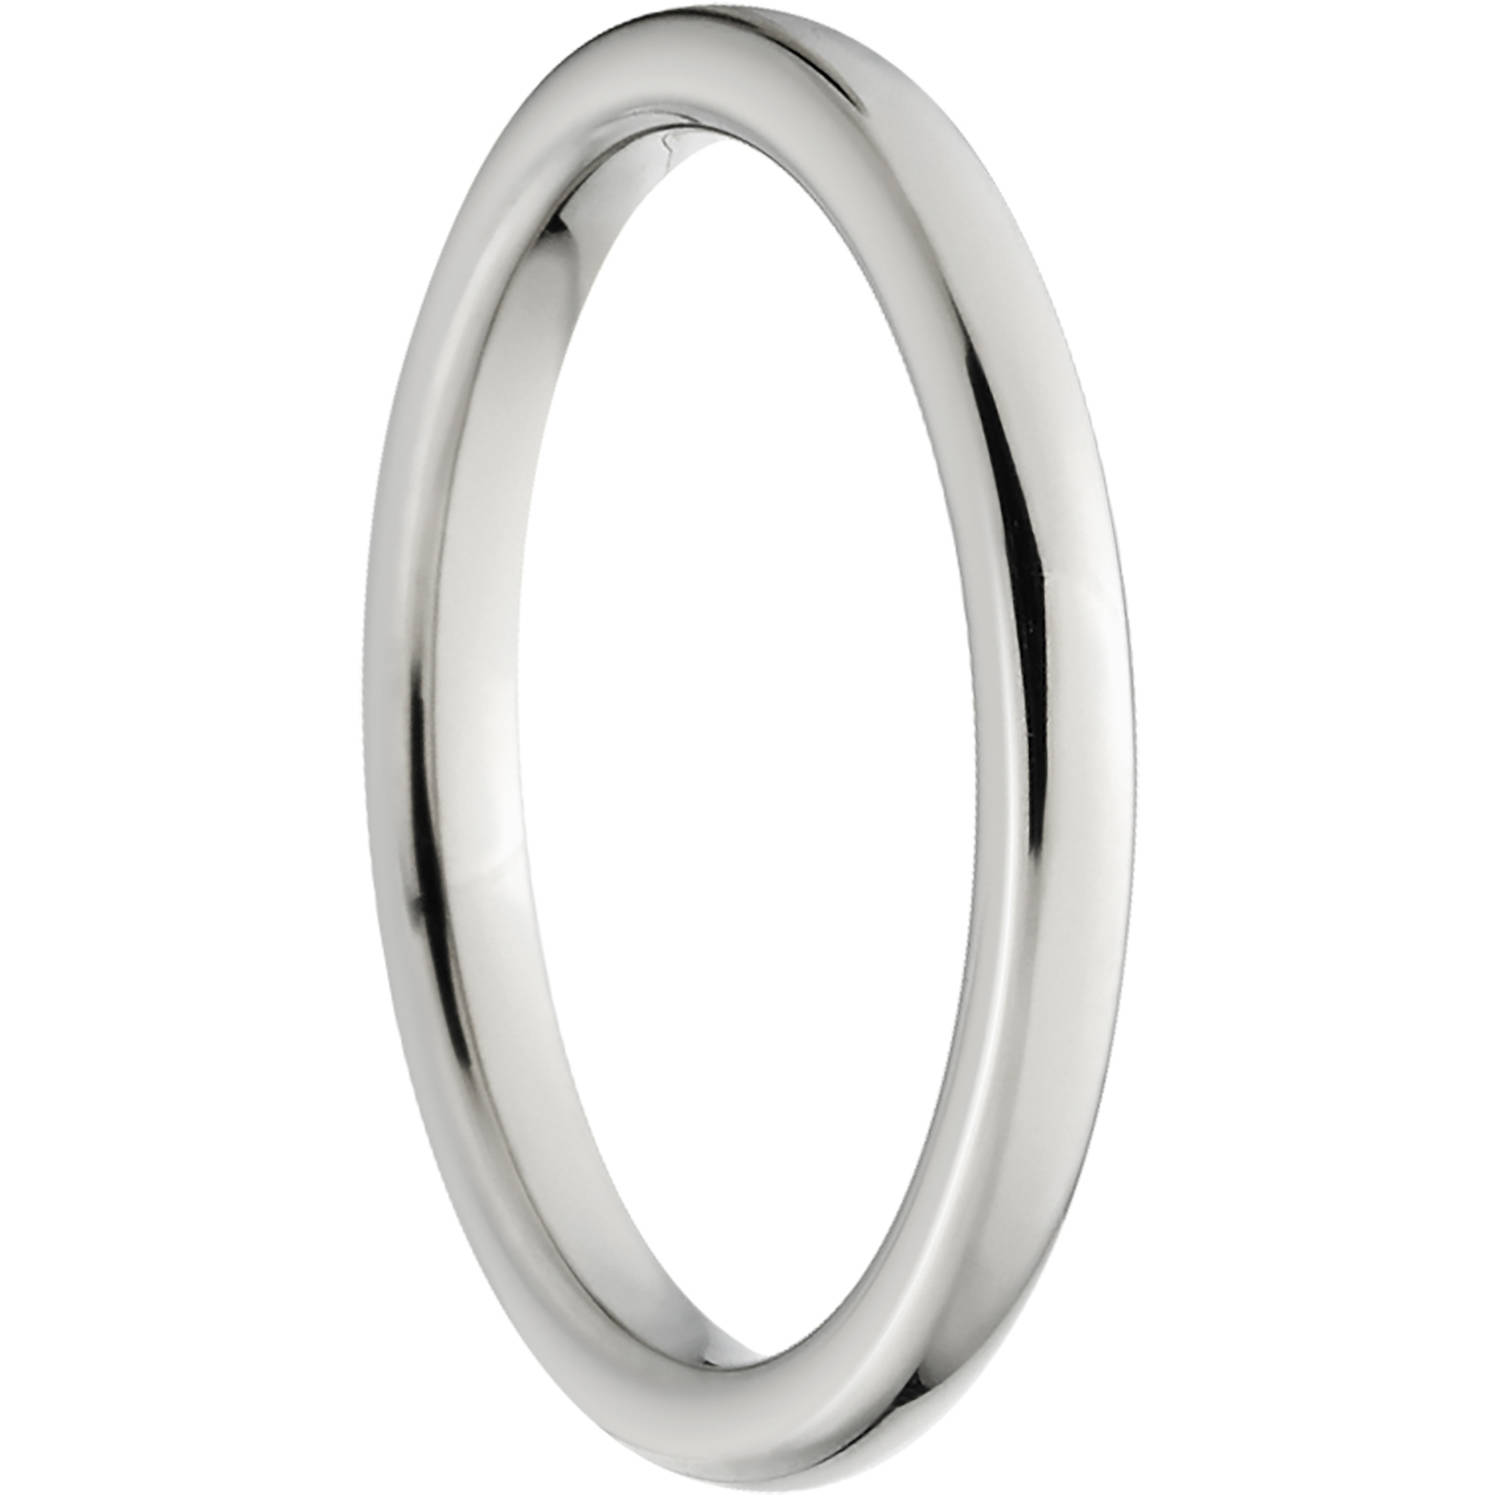 Polished 2mm Titanium Wedding Band with fort Fit Design